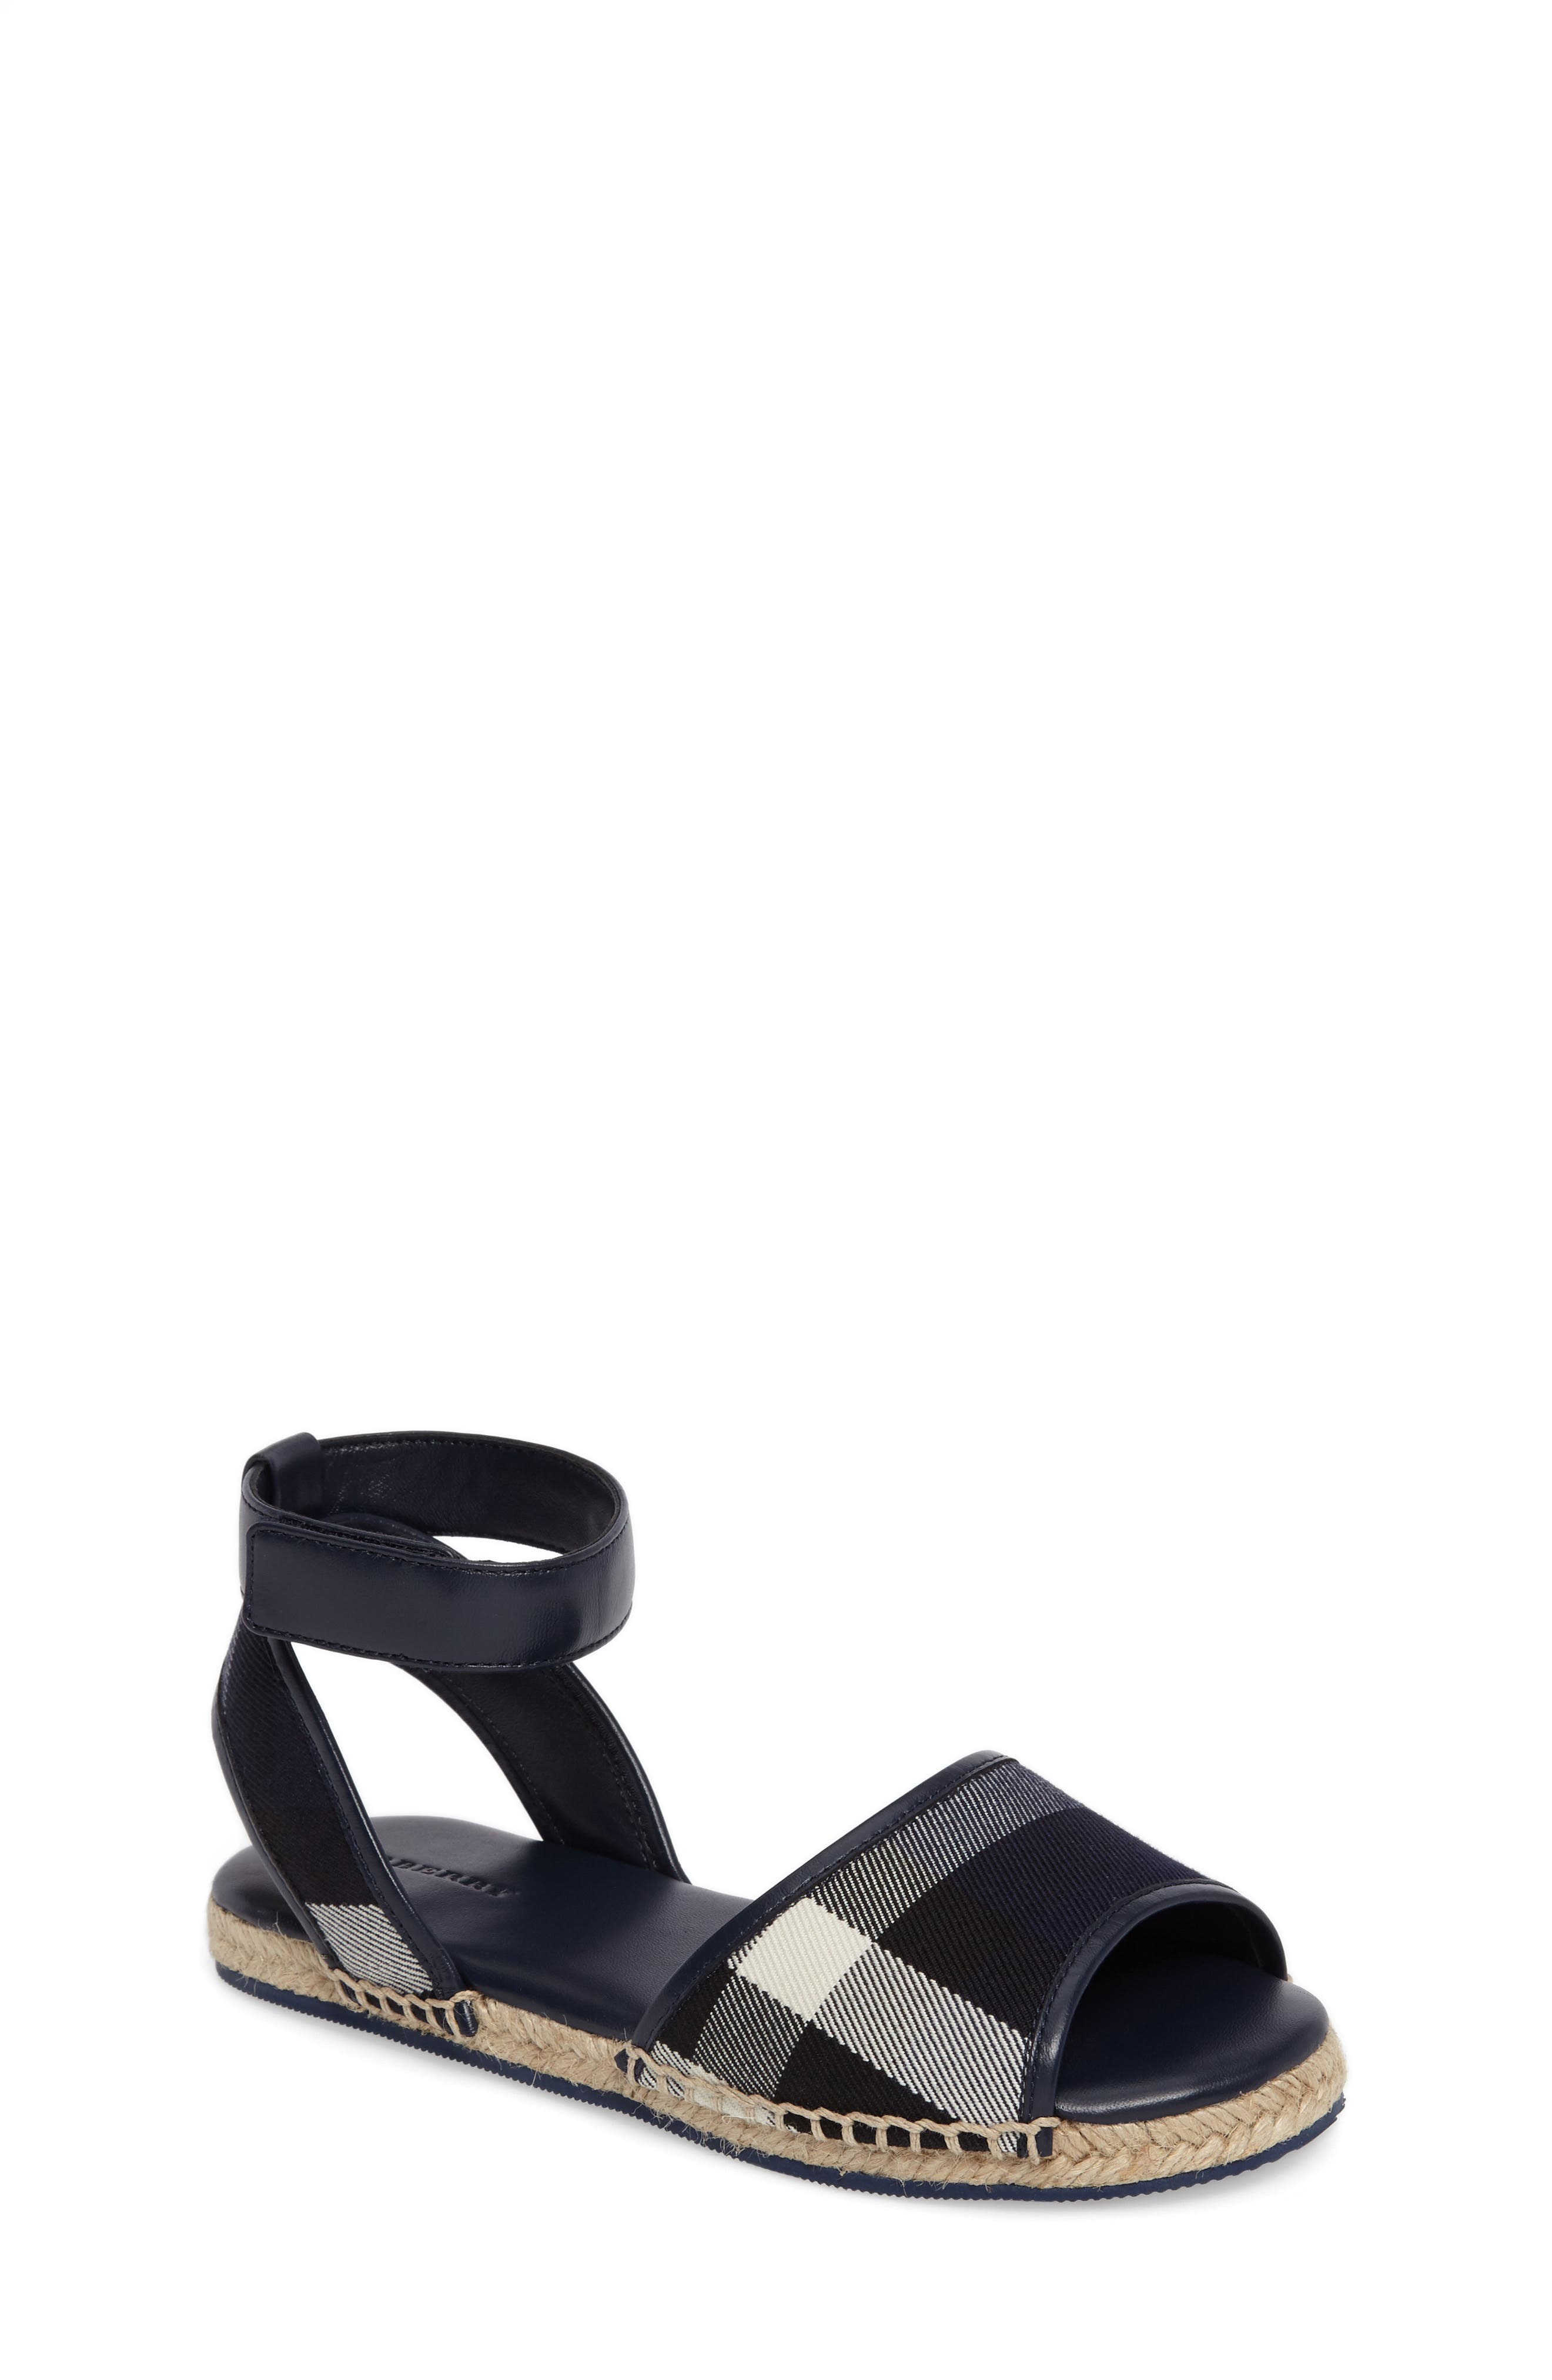 Livvy Ankle Strap Sandal,                             Main thumbnail 1, color,                             402